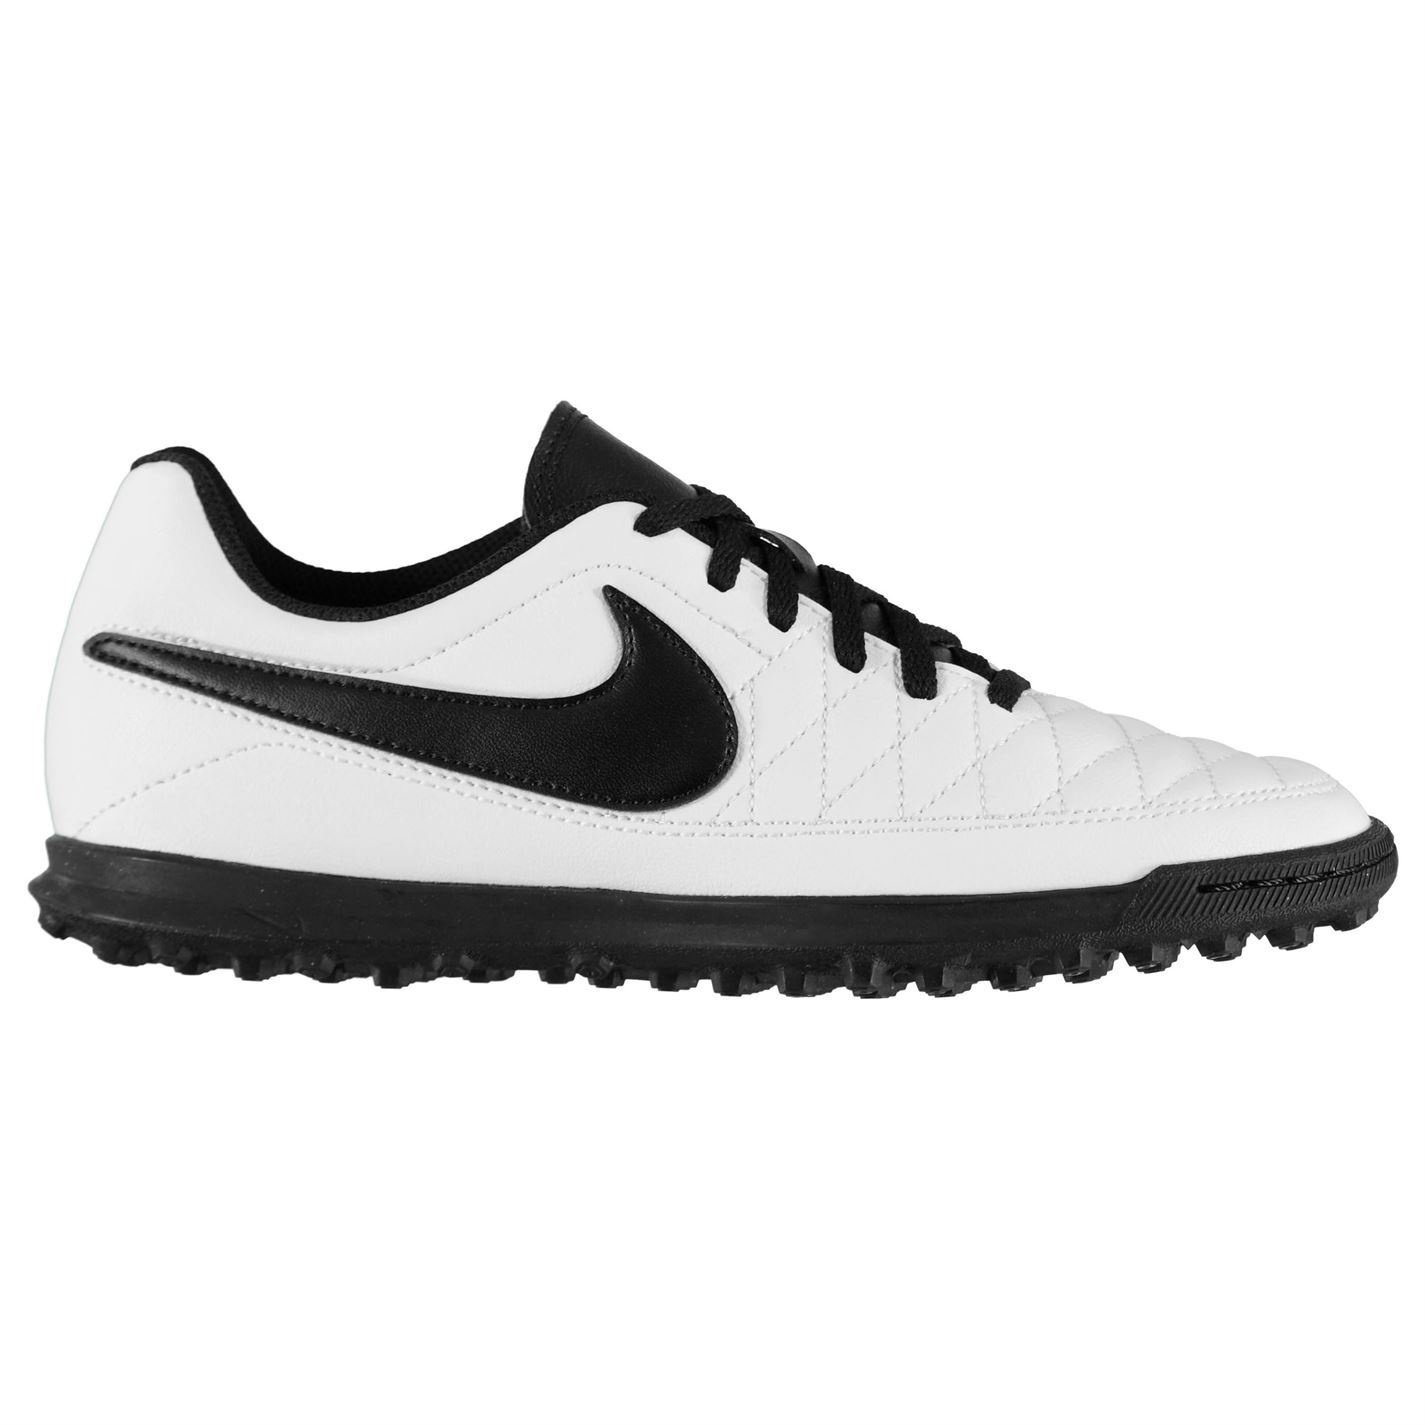 Nike-majestry-Astro-Turf-Football-Baskets-Pour-Homme-Football-Baskets-Chaussures miniature 6